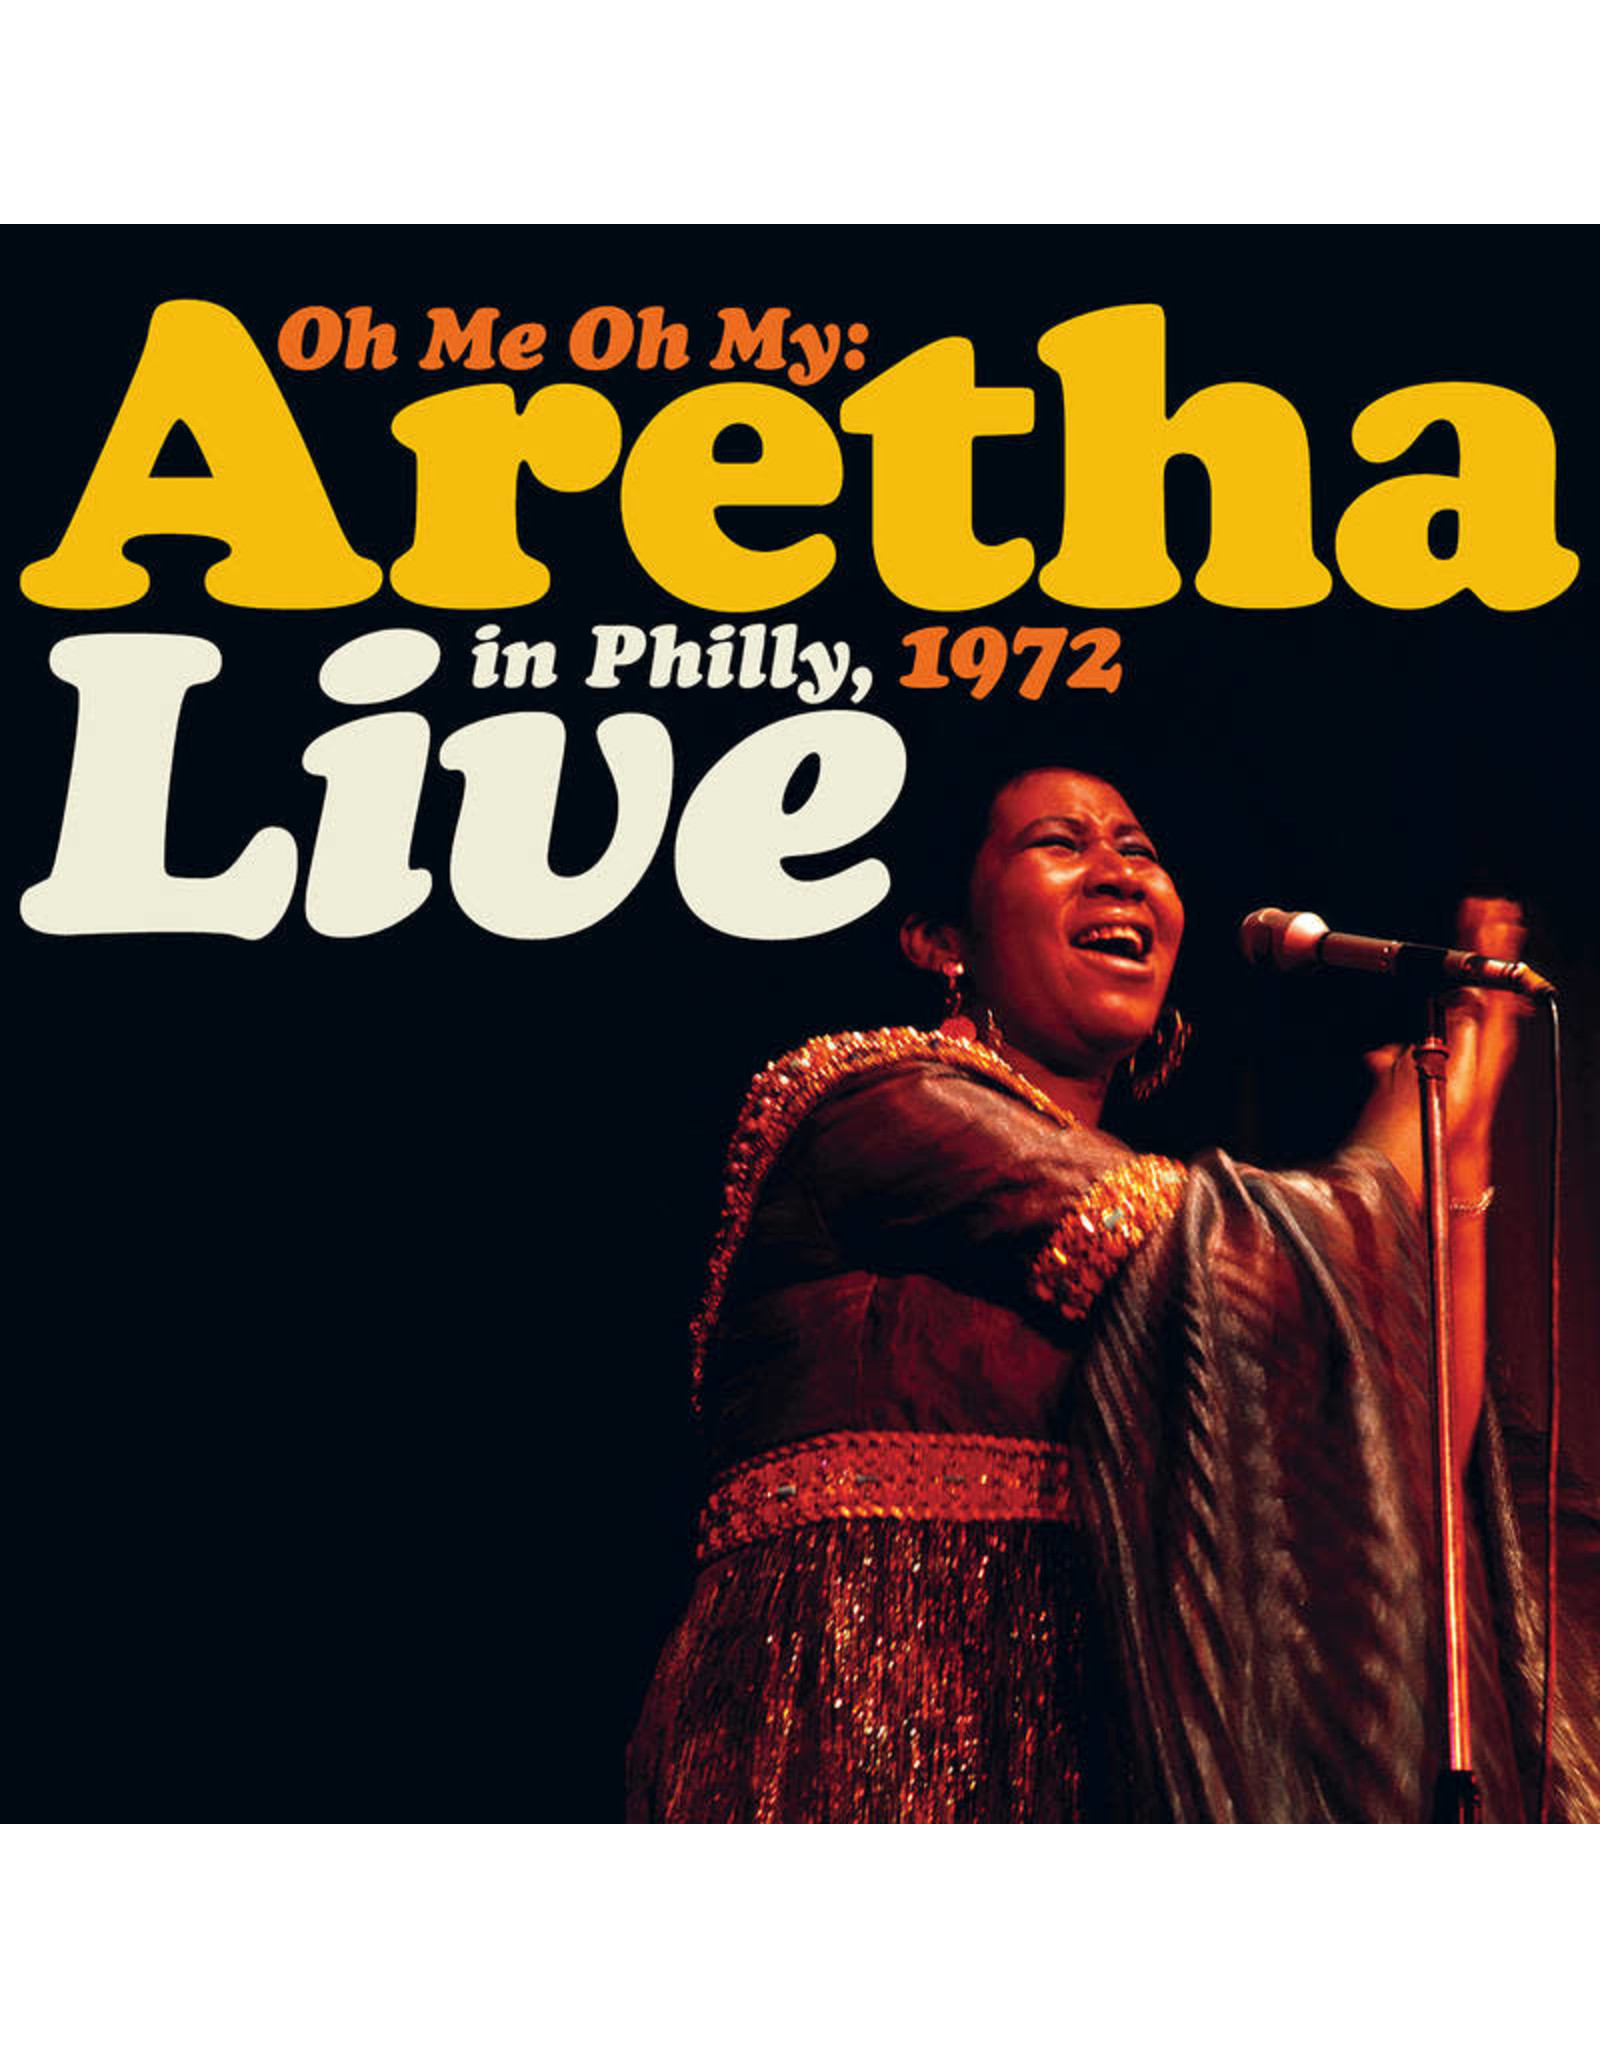 Aretha Franklin - Oh Me Oh My: Aretha Live in Philly, 1972 (Record Store Day)